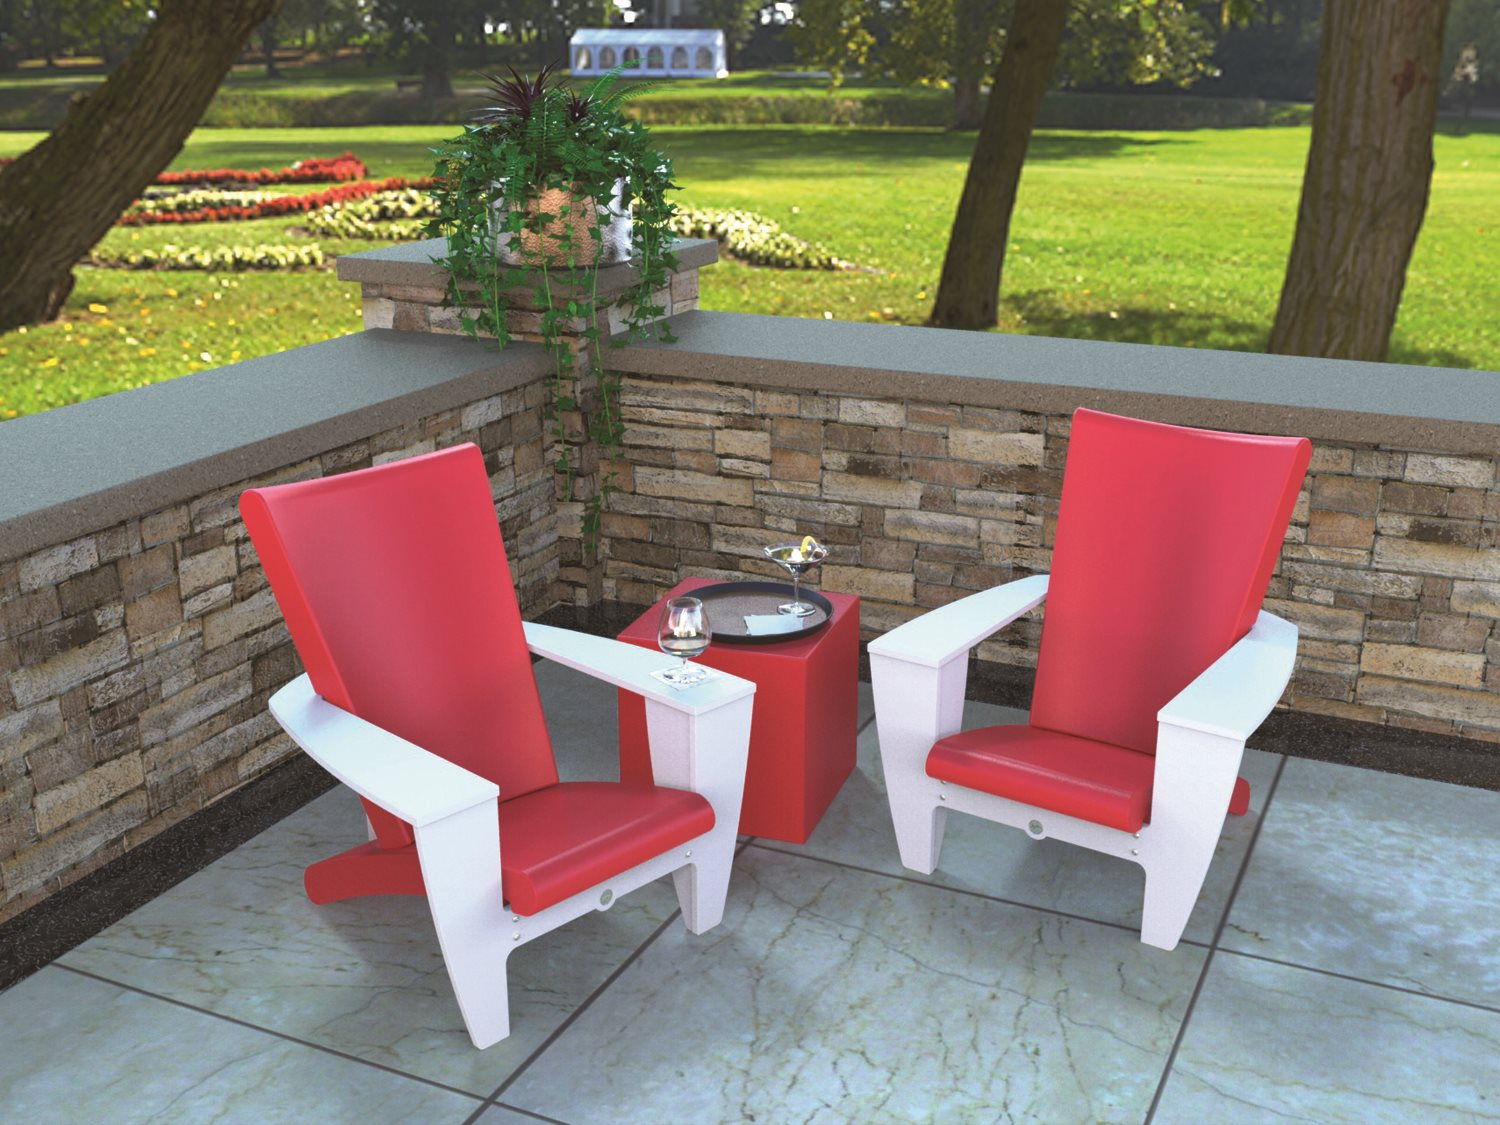 Tropitone | Cast Aluminum Patio Furniture Brands | Patio Furniture Websites